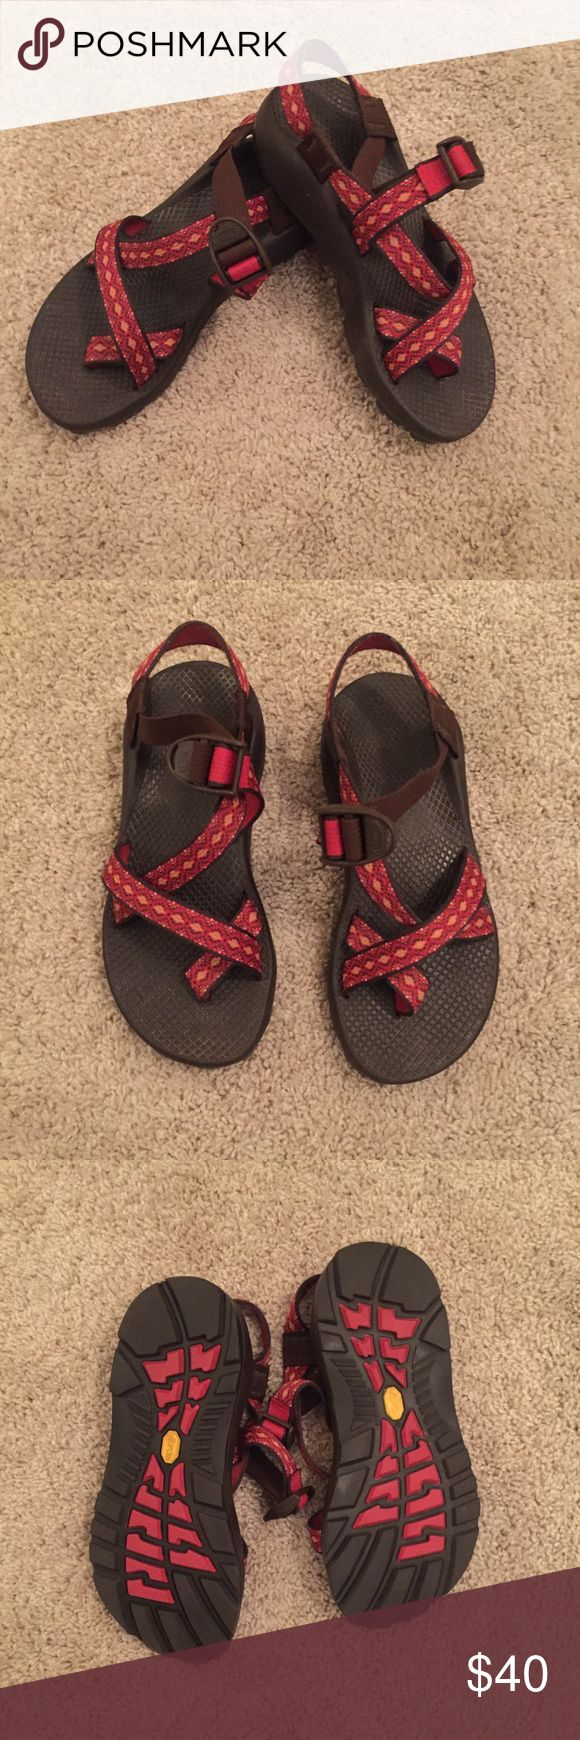 Women's Chacos Women's Size 7 Chacos. One strap. In good condition. Red yellow and orange.  Has brown sole. These are great shoes for the outdoors. Chacos Shoes Sandals